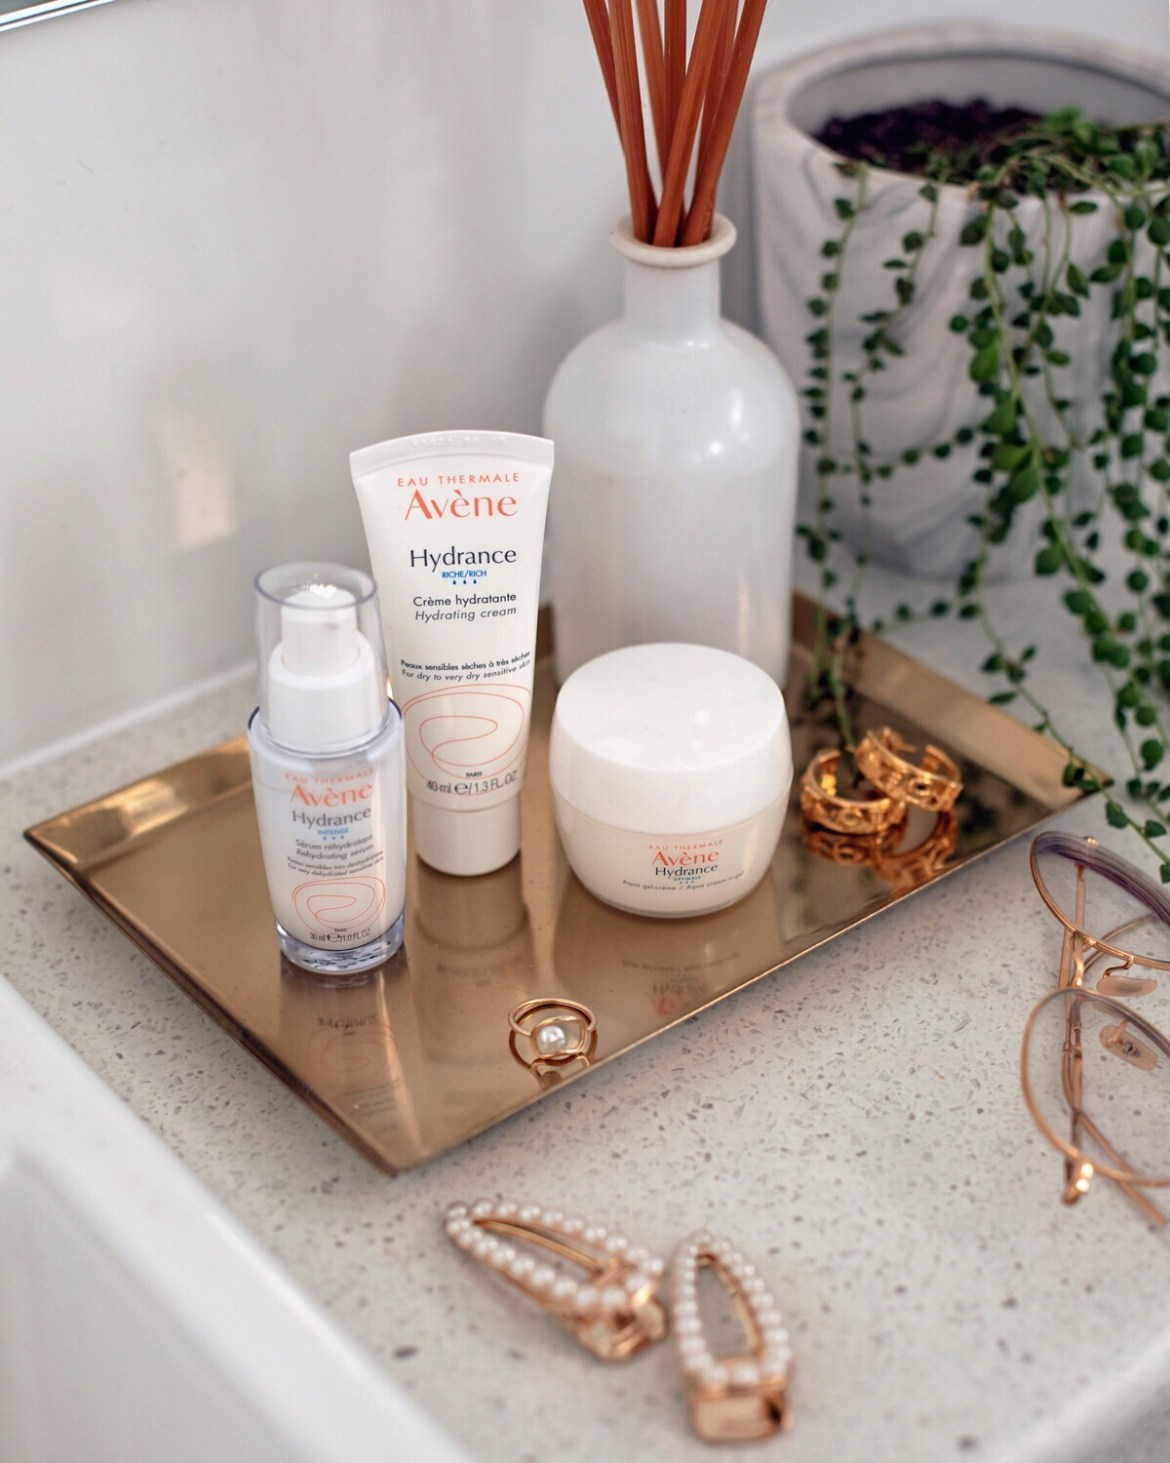 Avene Hydrance range in my bathroom